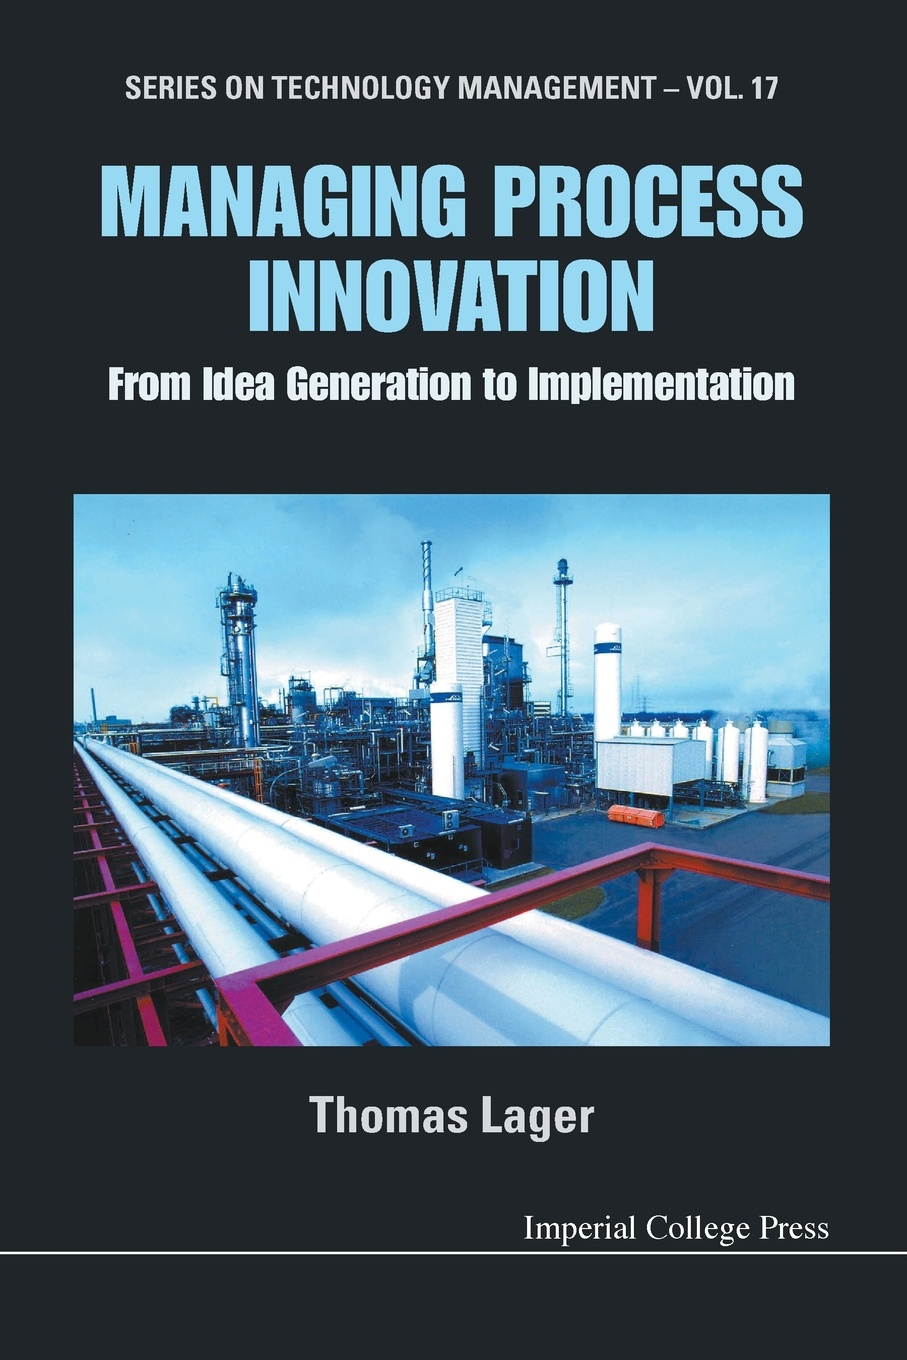 Thomas Lager MANAGING PROCESS INNOVATION. FROM IDEA GENERATION TO IMPLEMENTATION design process and innovation